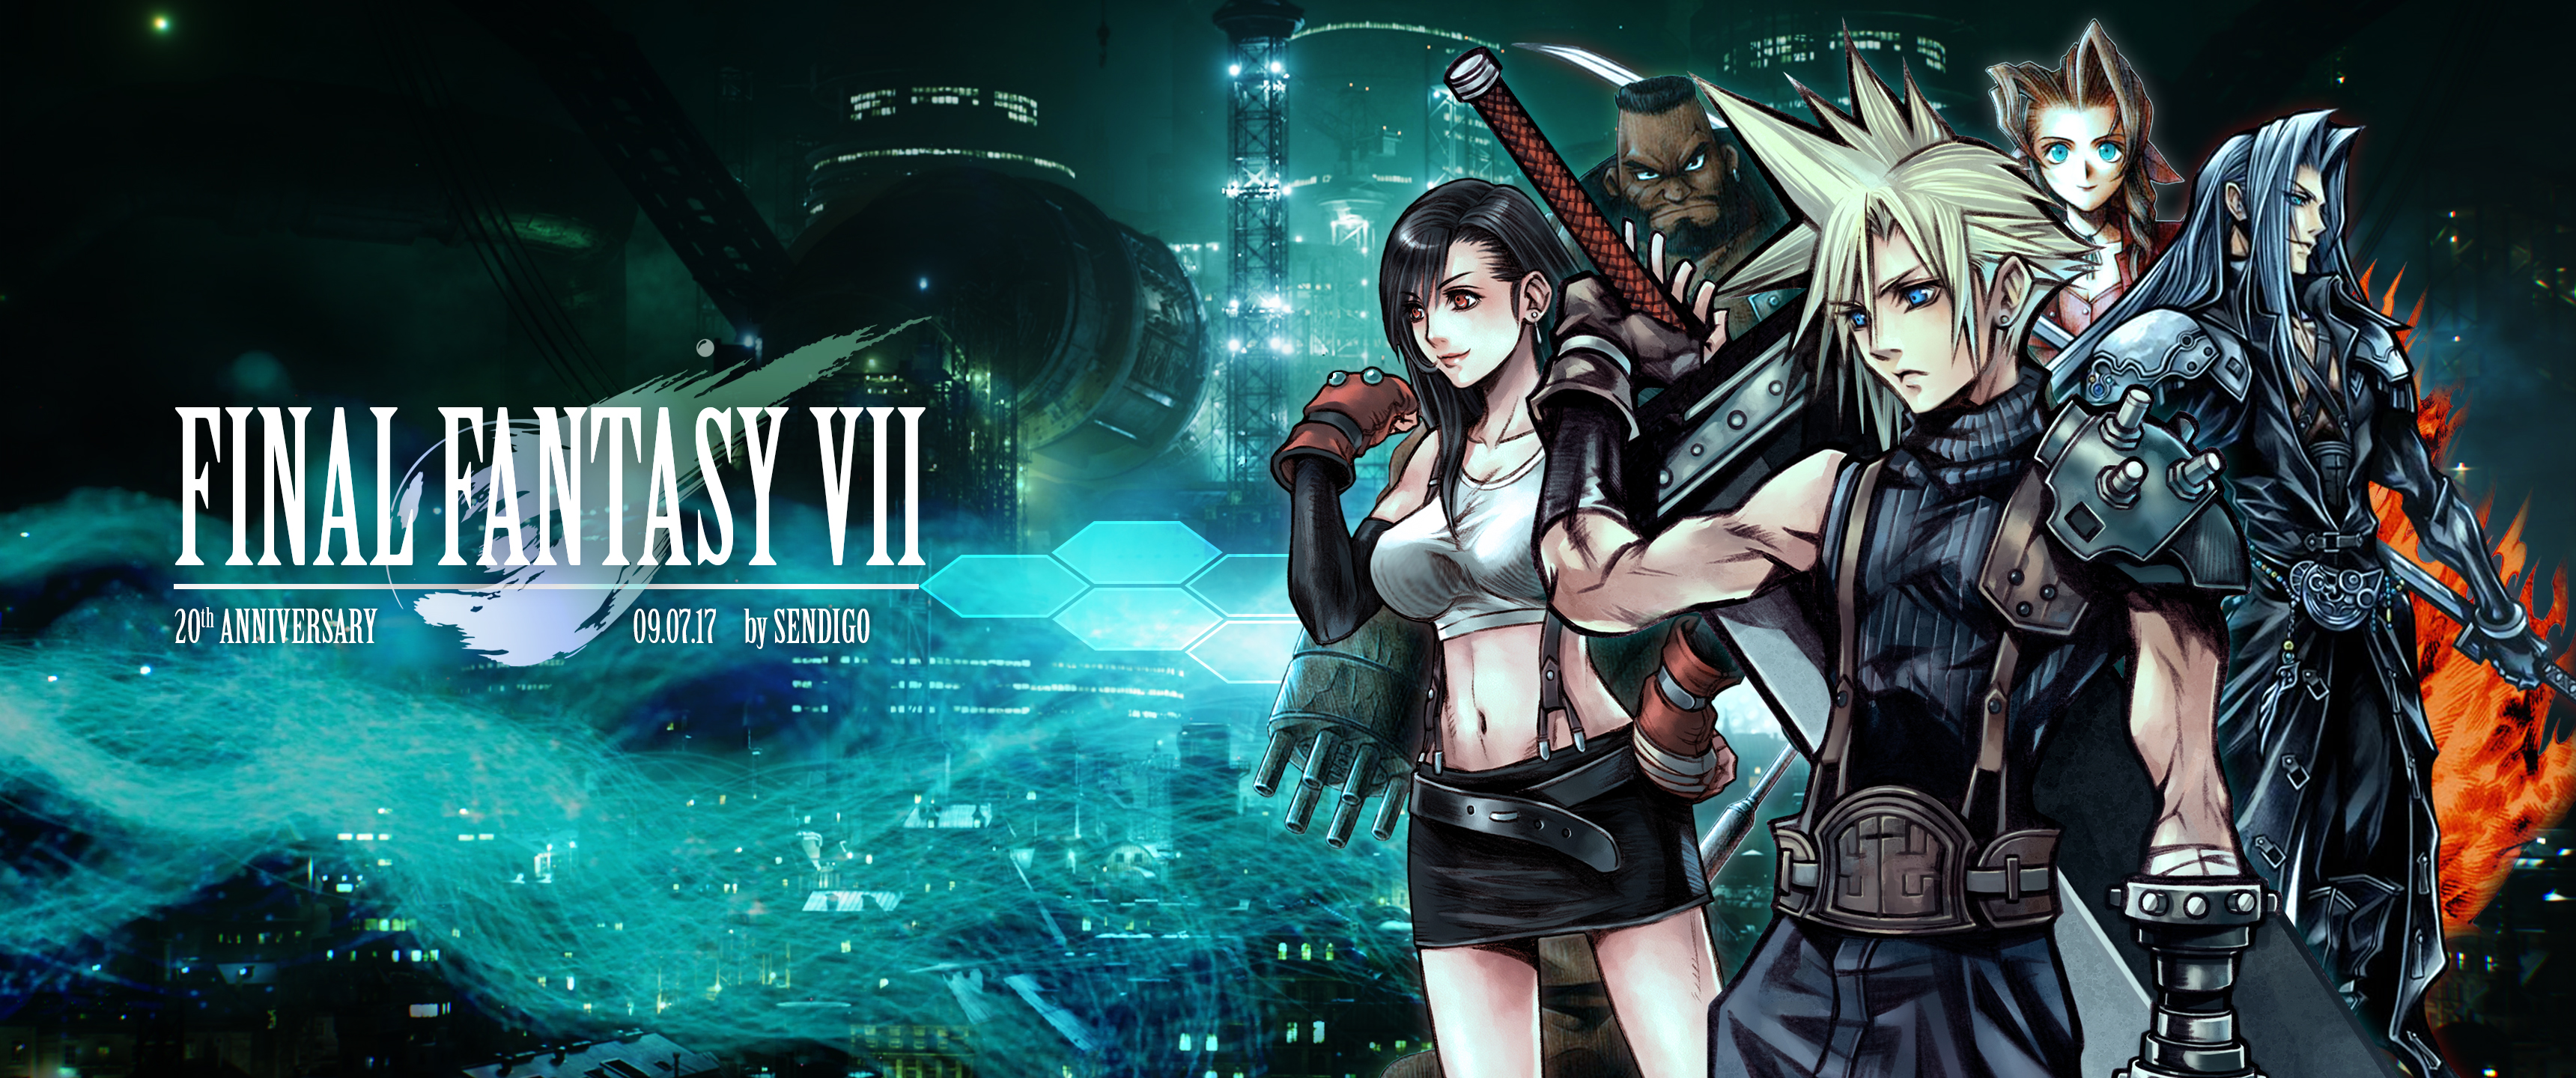 Final Fantasy Vii 20th Anniversary Wallpaper By Sendigo On